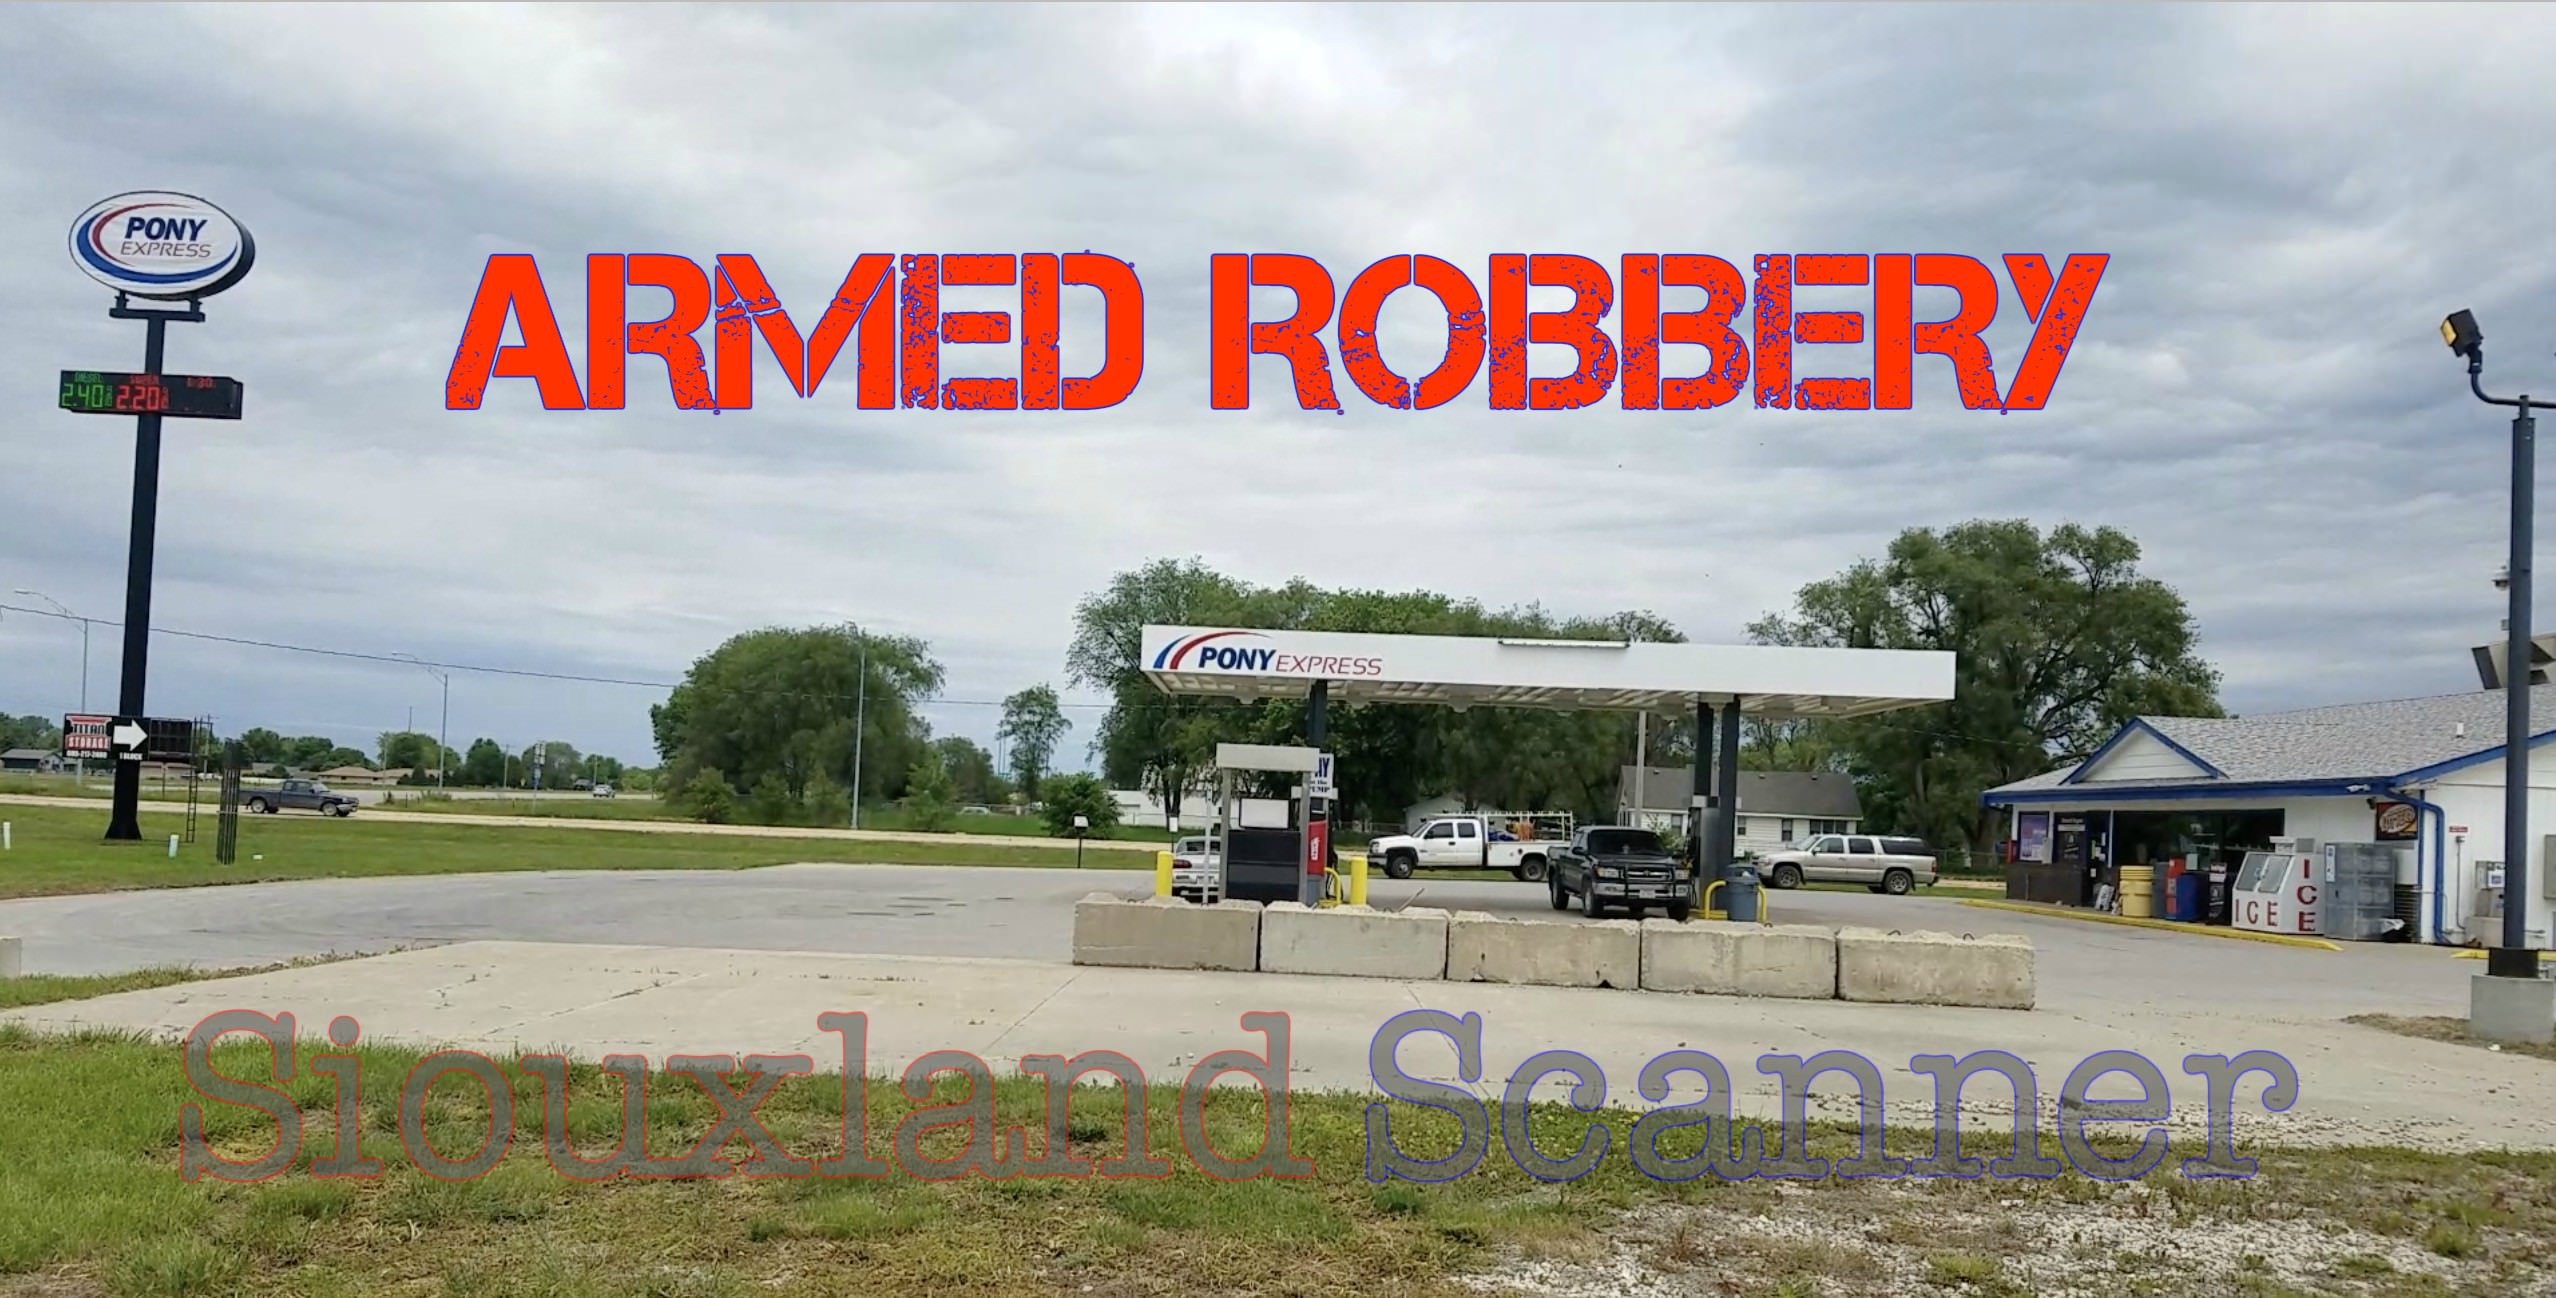 Armed Robbery Pony Express in South Sioux City Nebrska